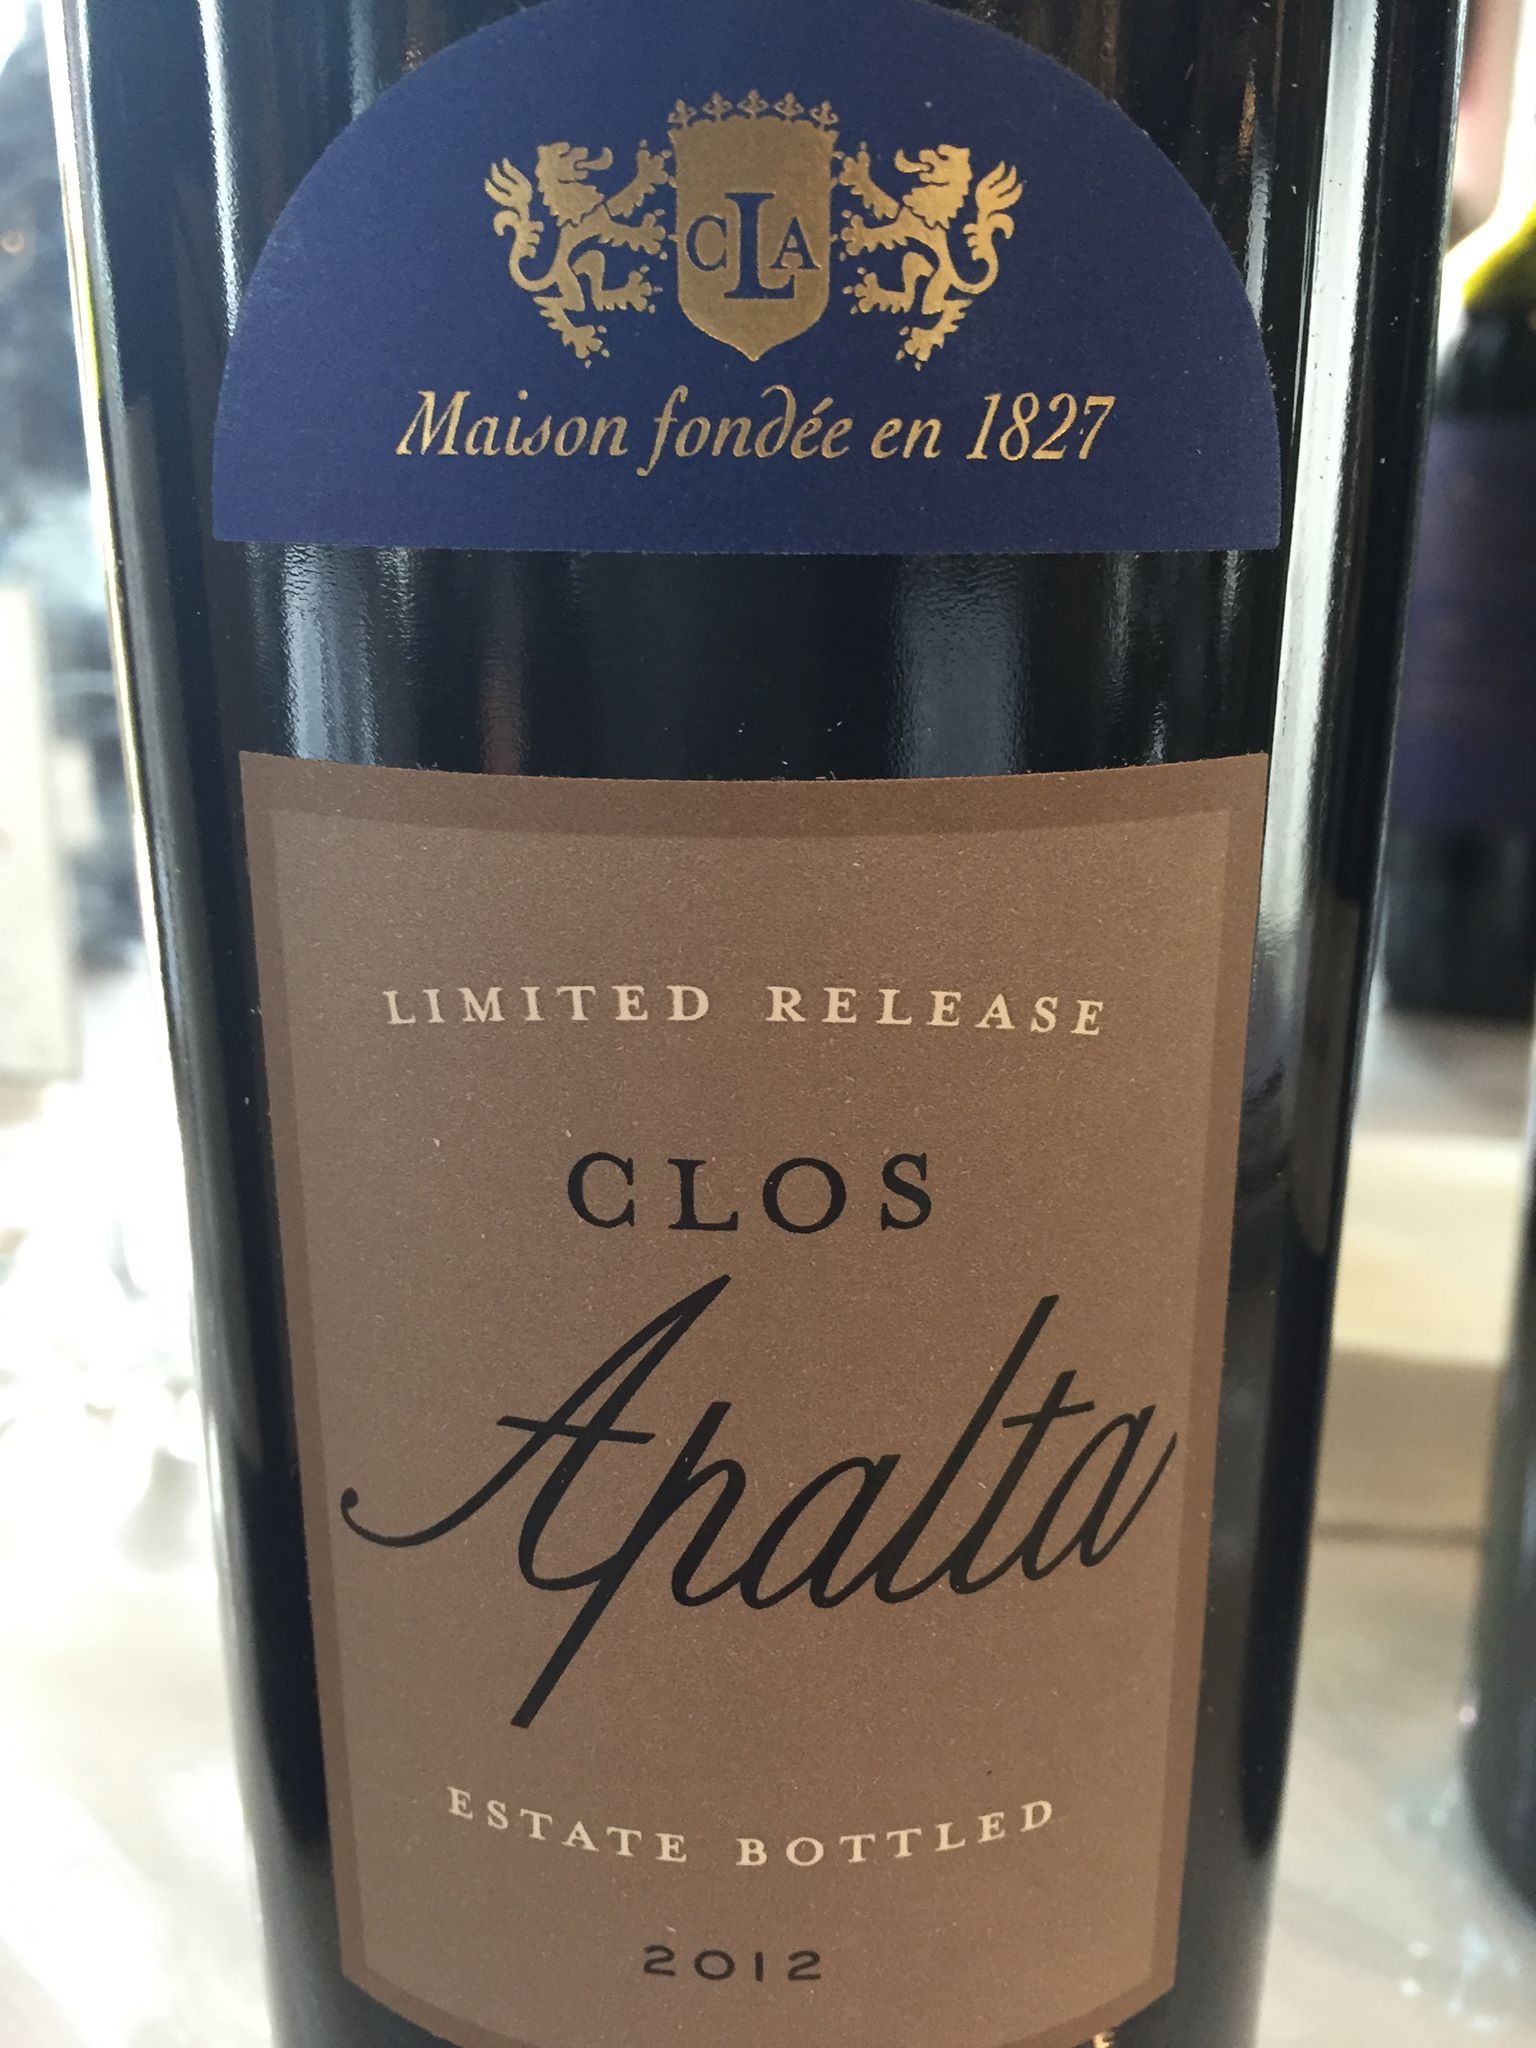 Clos L'apalta – 2012 Limited Release – Colchagua Valley